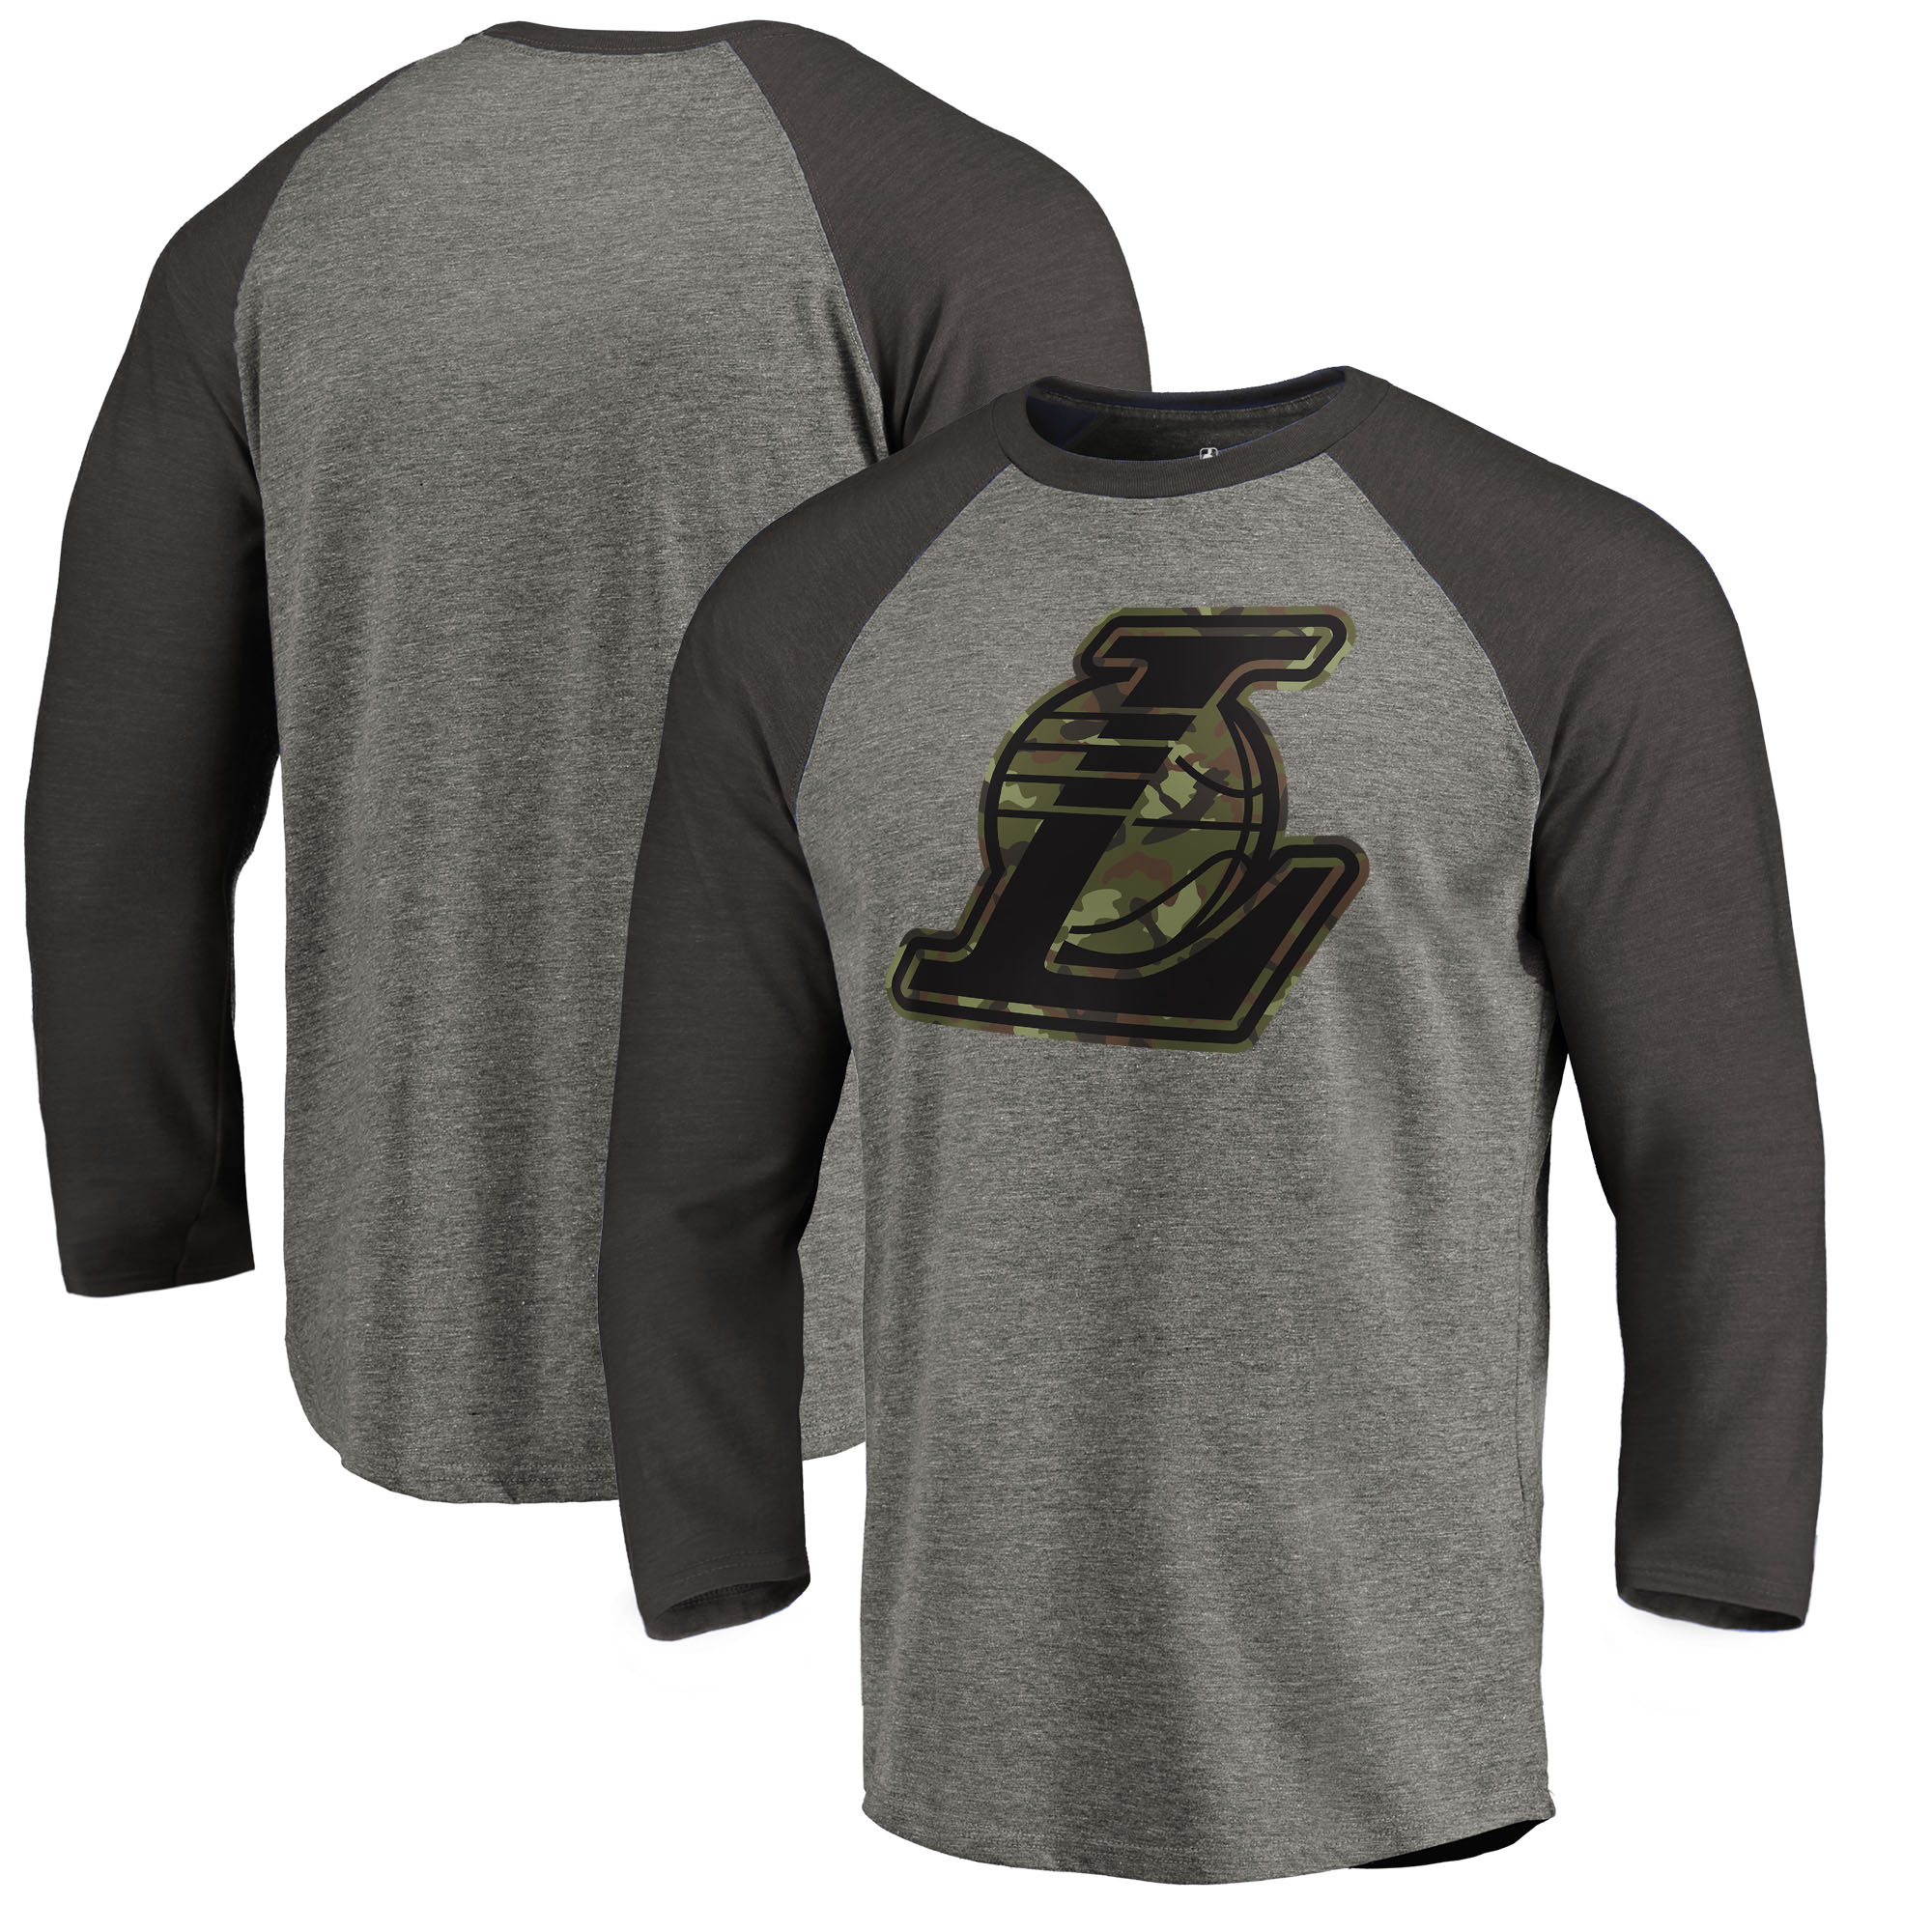 Los Angeles Lakers Fanatics Branded Camo Collection Prestige Raglan 3/4-Sleeve T-Shirt - Heathered Gray